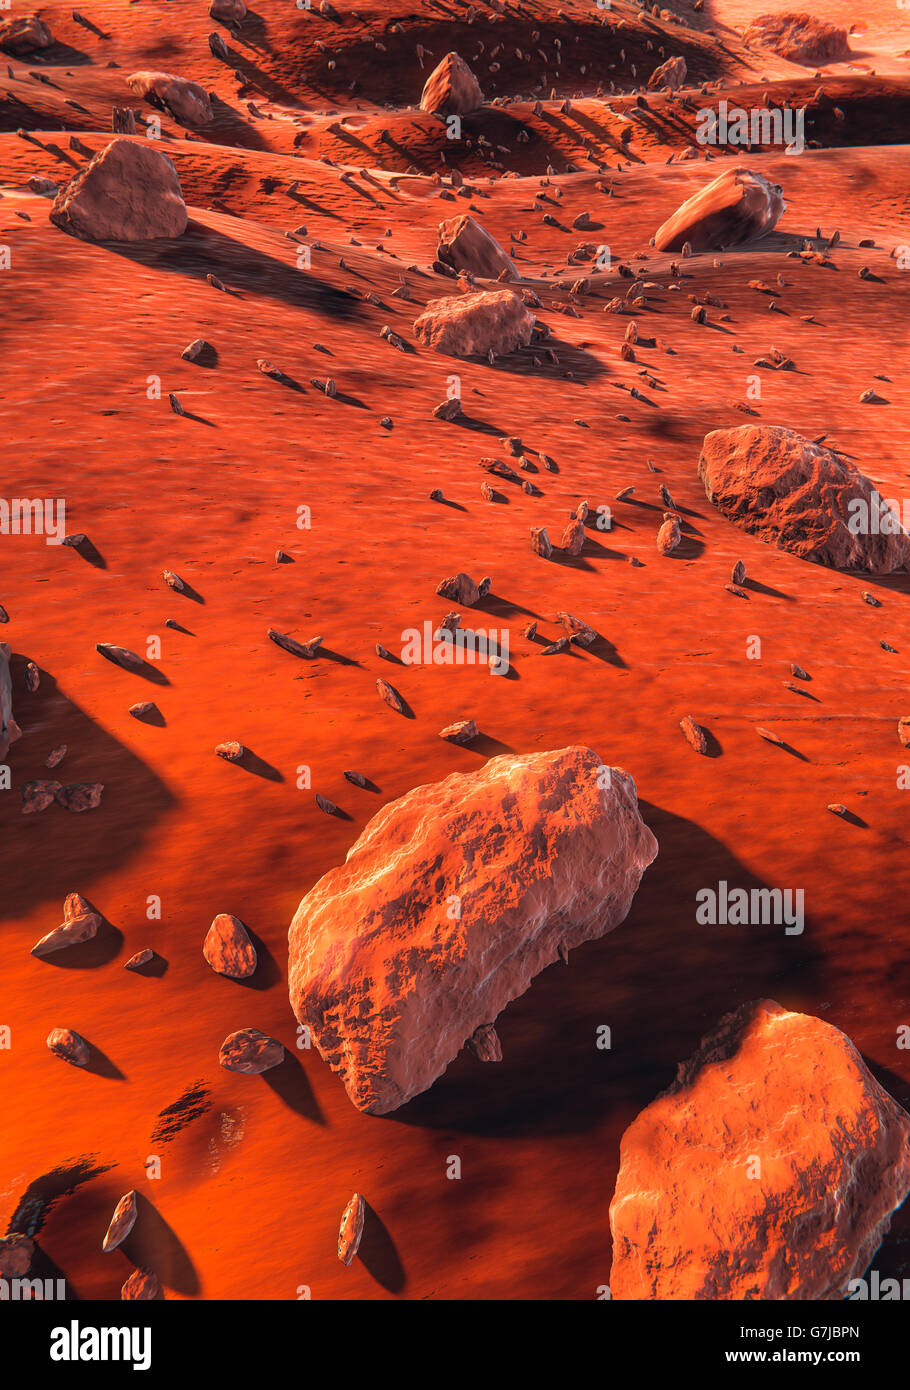 Mars surface, red rocks Stock Photo